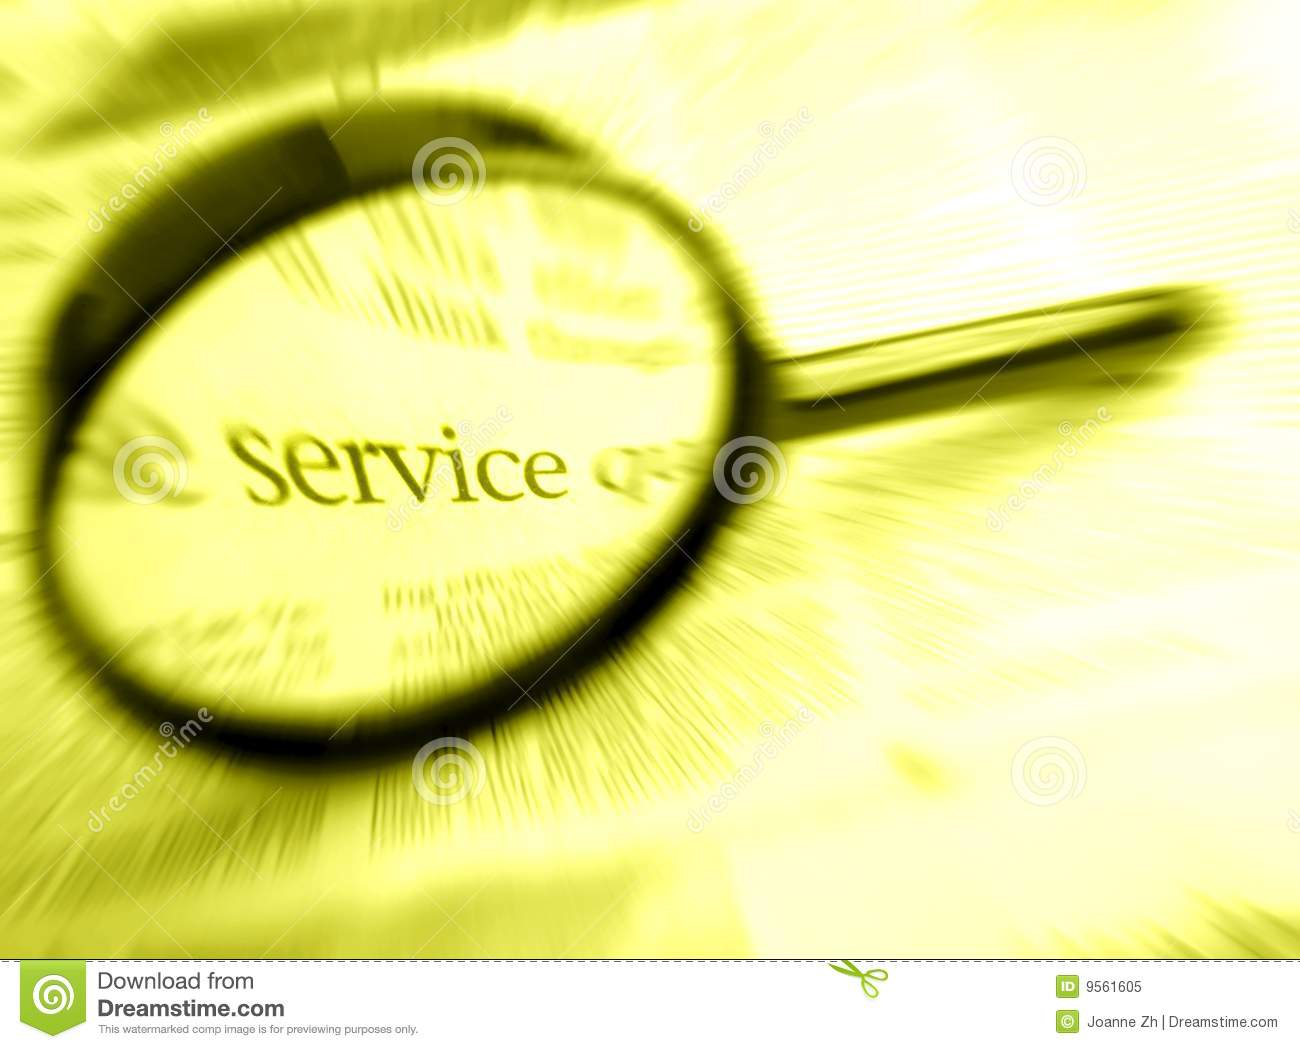 Service word with magnifier